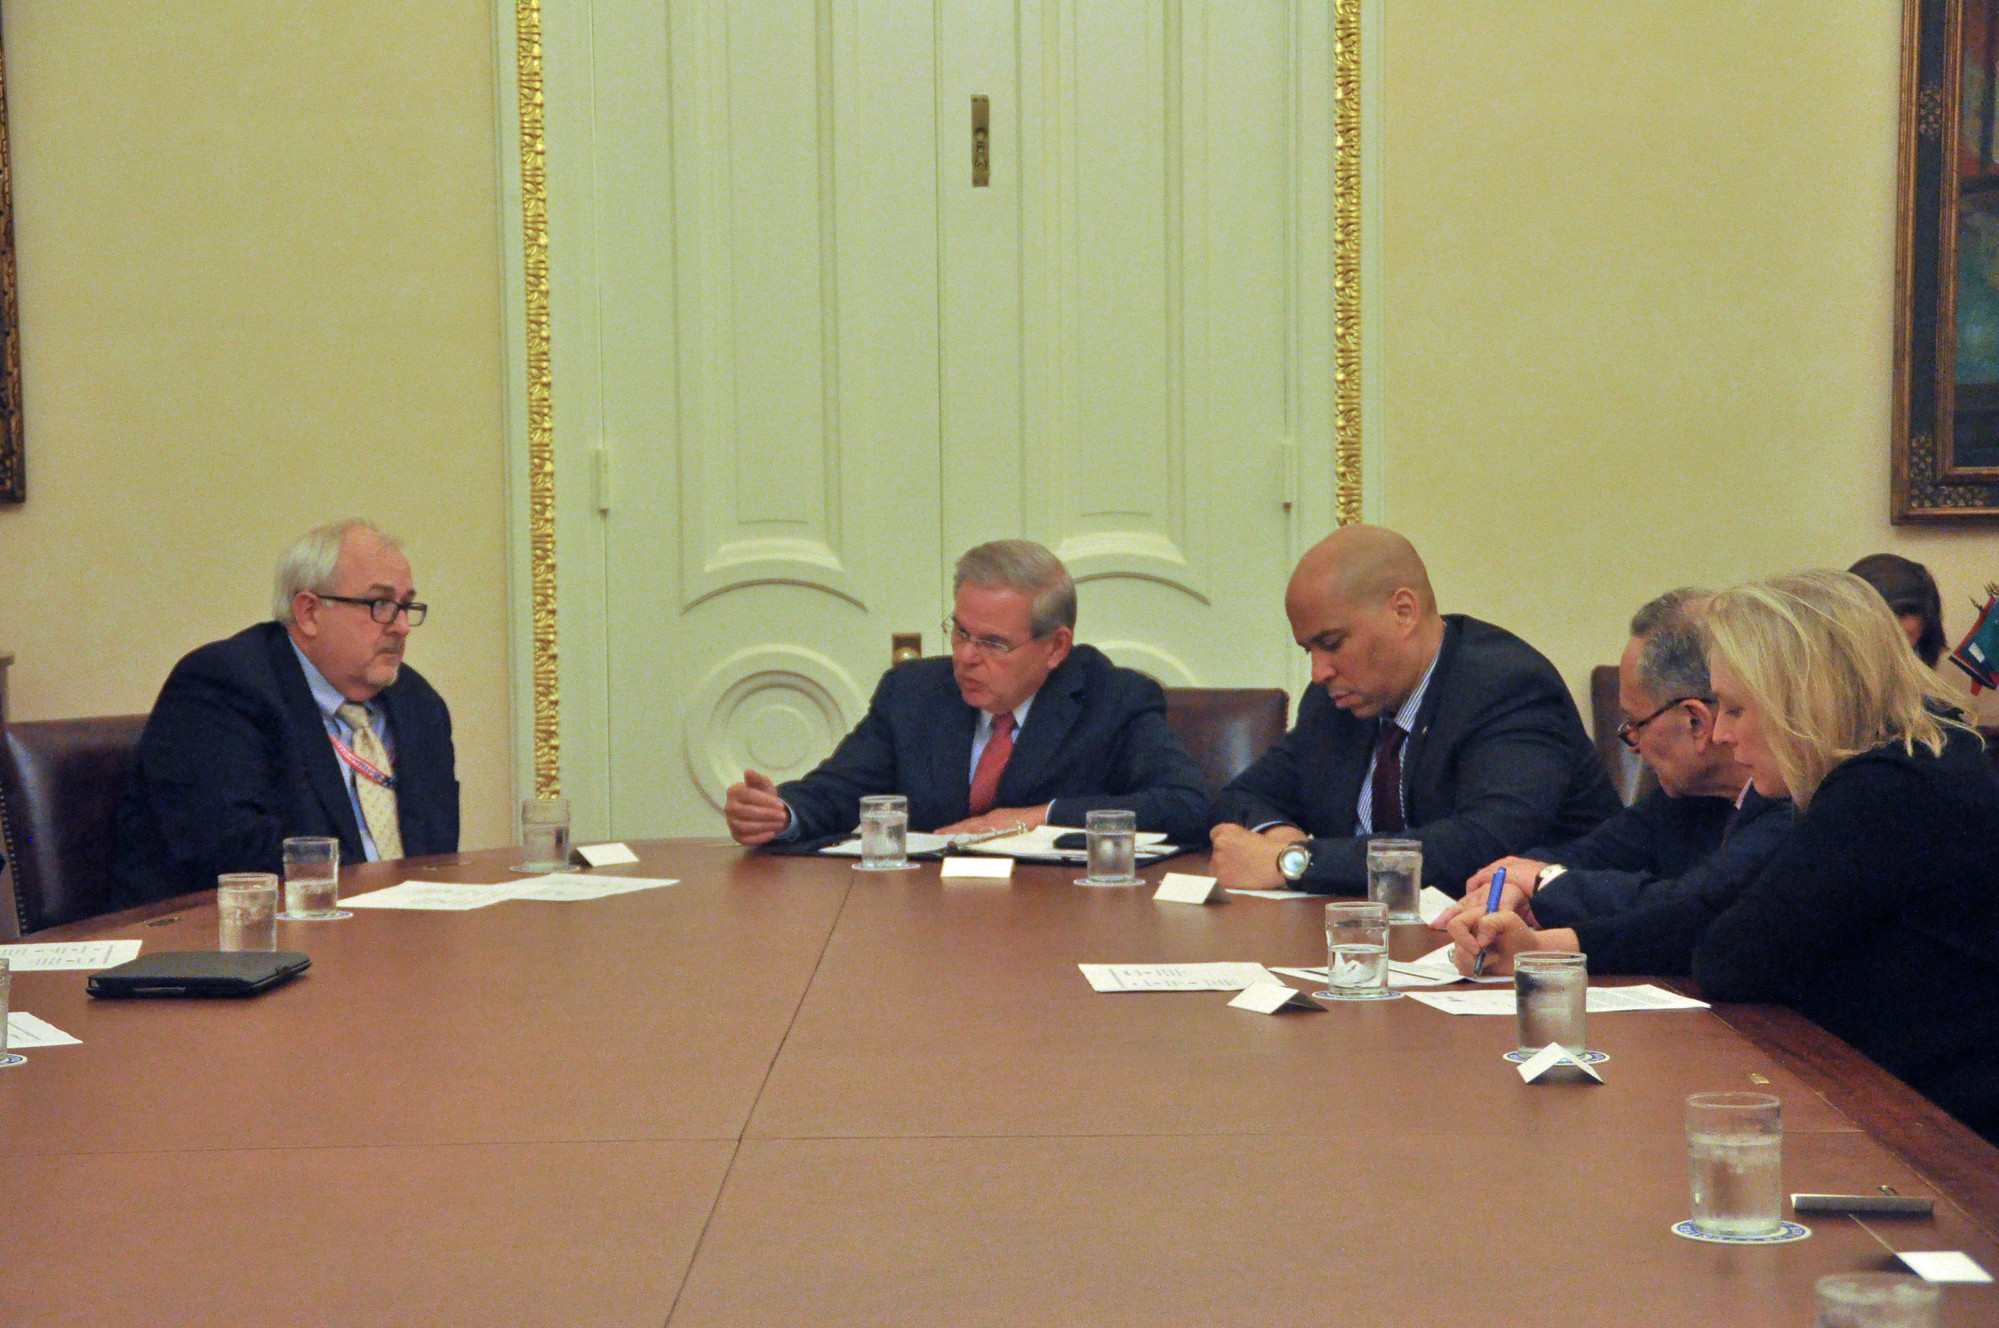 FEMA Administrator Craig Fugate, left, met with Sens. Bob Mendenez, Cory Booker, Charles Schumer and Kirsten Gillibrand on Mar. 11.